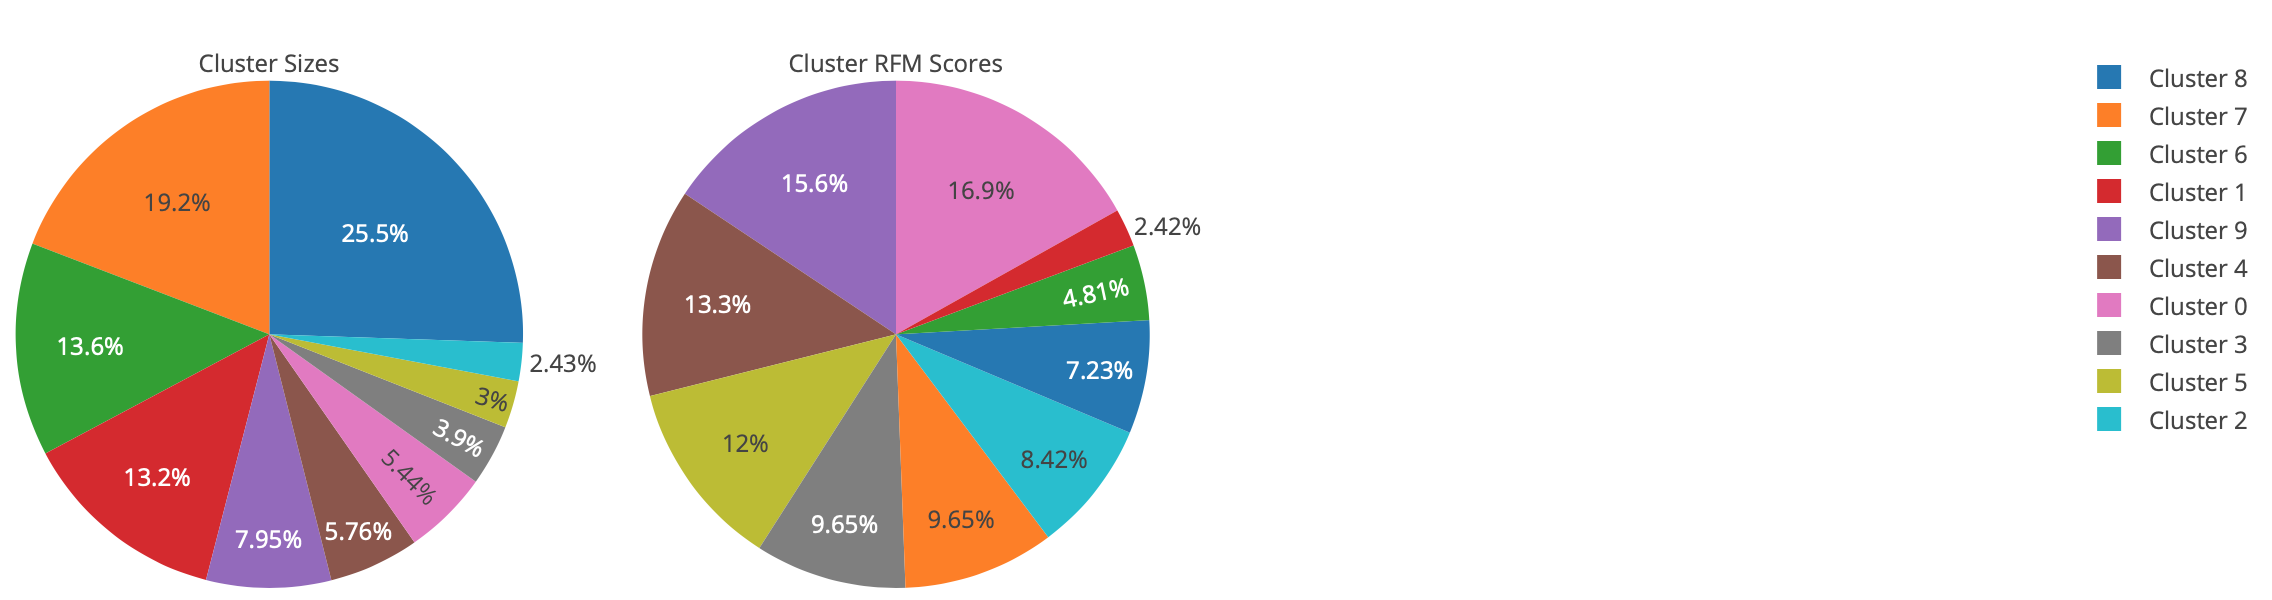 Cluster comparison: sizes and RFM score. Cluster 0 is our best cluster